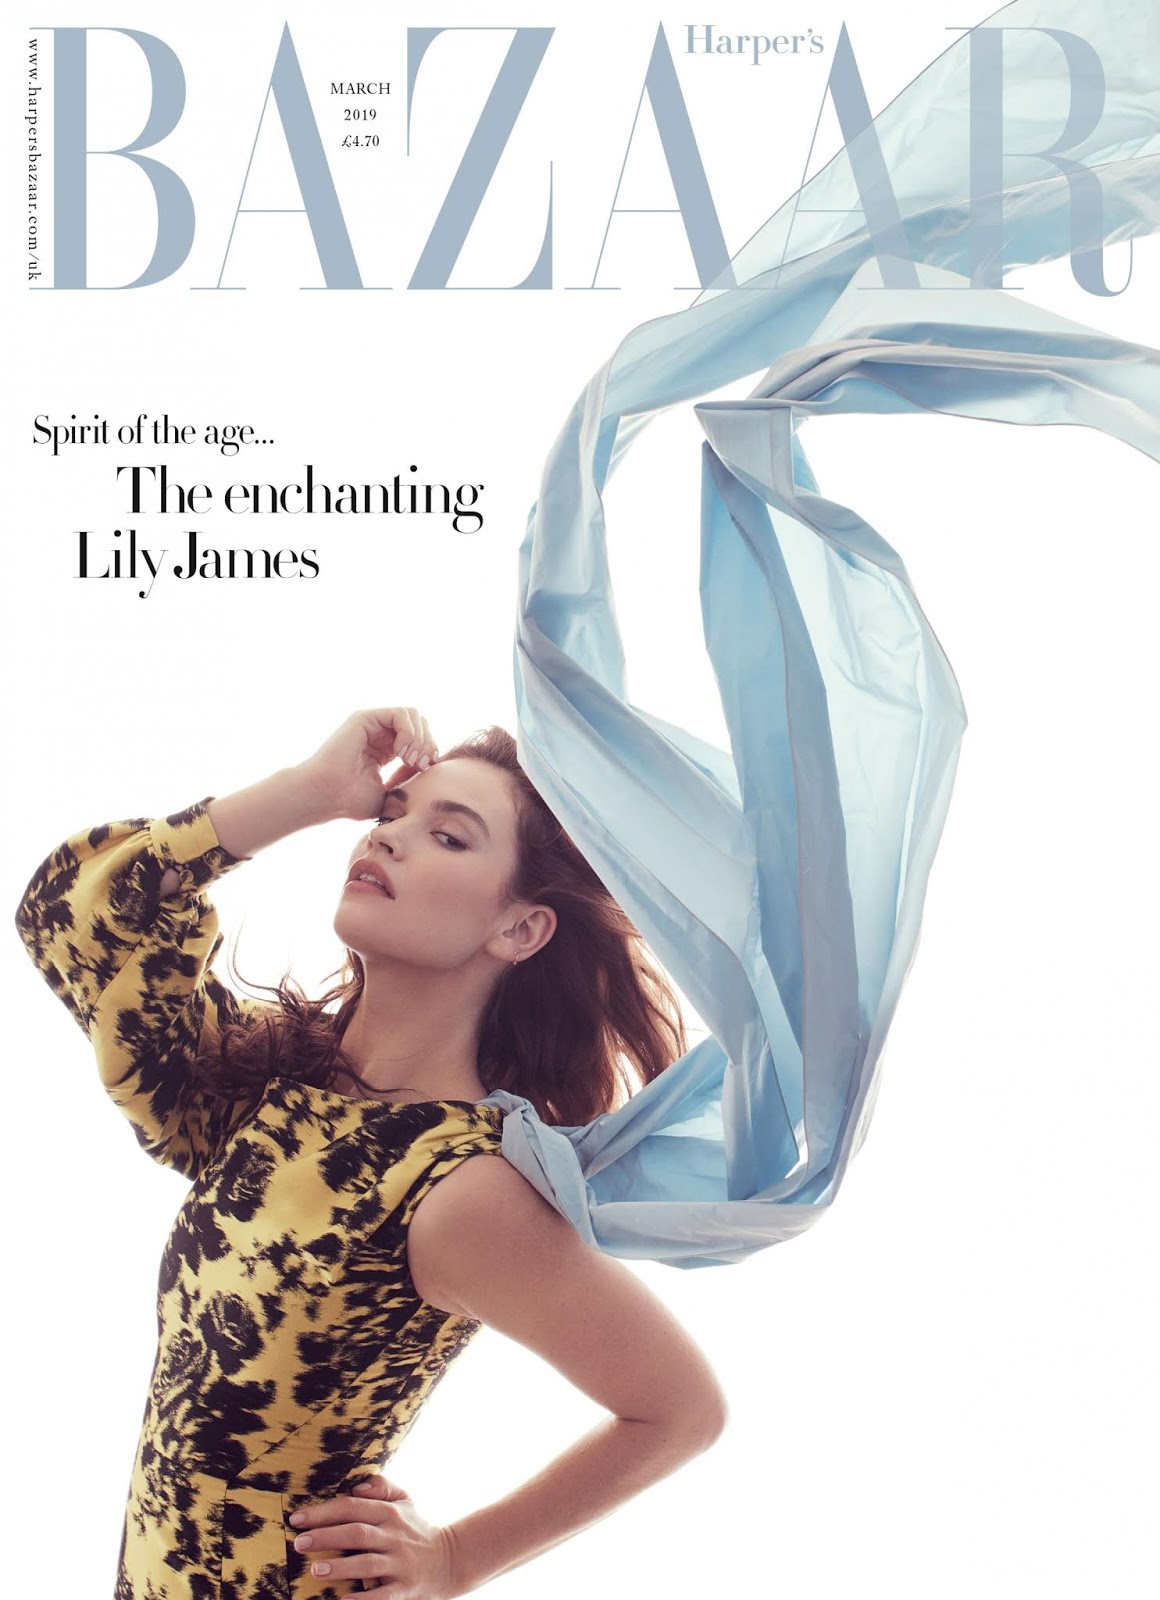 Lily James by Alex Lubomirski for Harpers Bazaar UK March 2019 (3).jpg